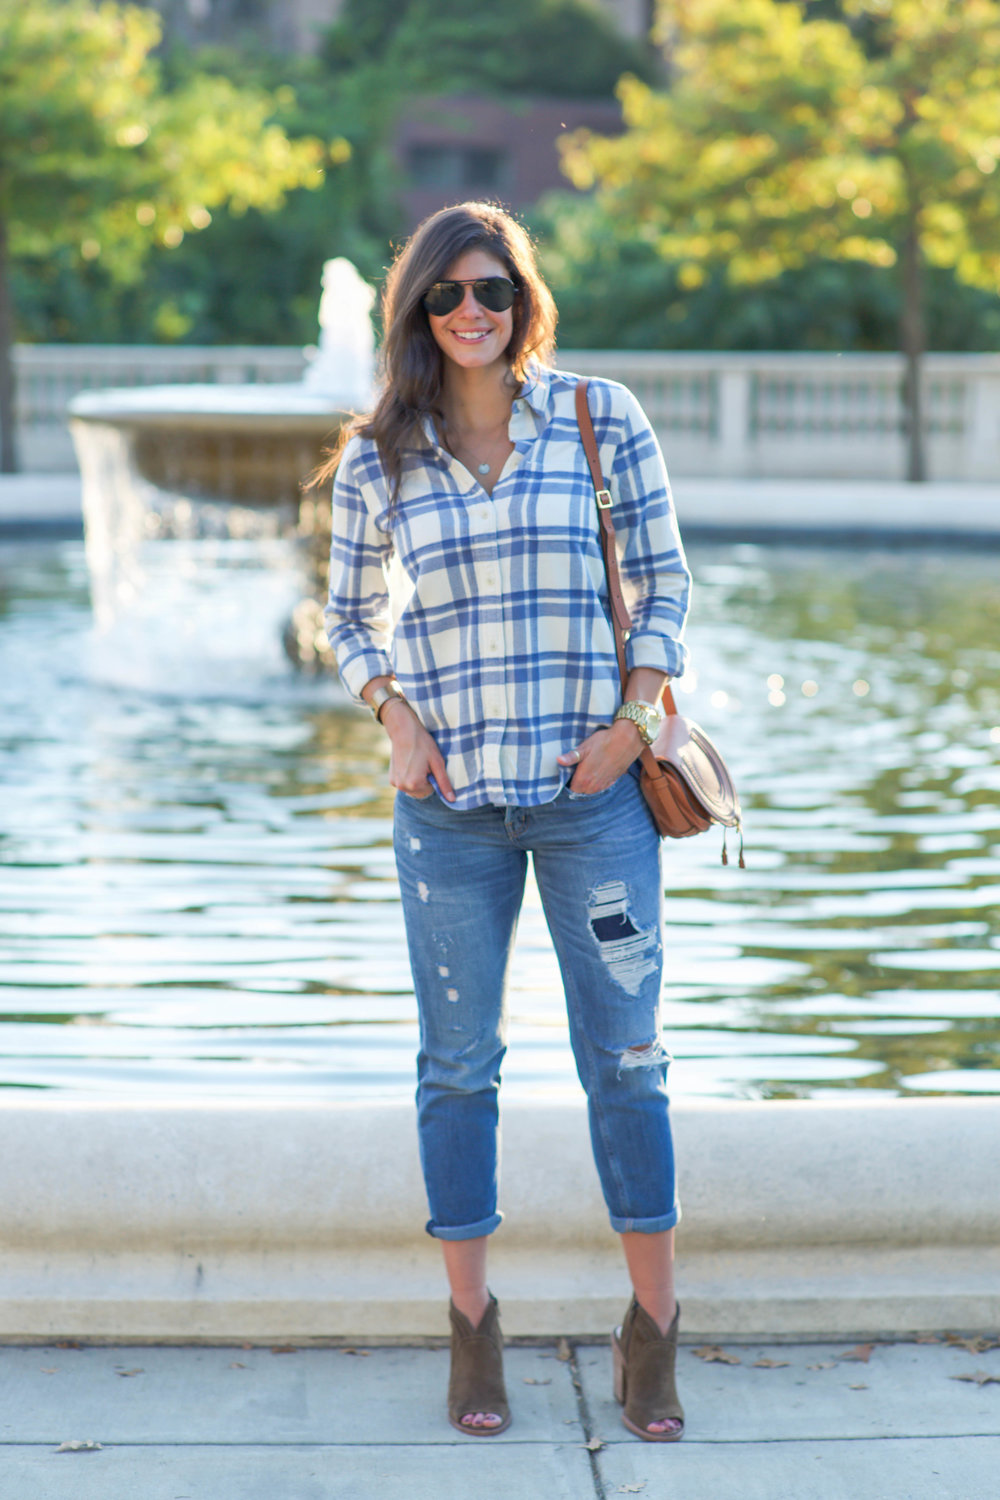 LaurenSchwaiger-Life-Style-Blog-Fall-Fashion-Boyfriend-Jeans-Flannel-Booties.jpg